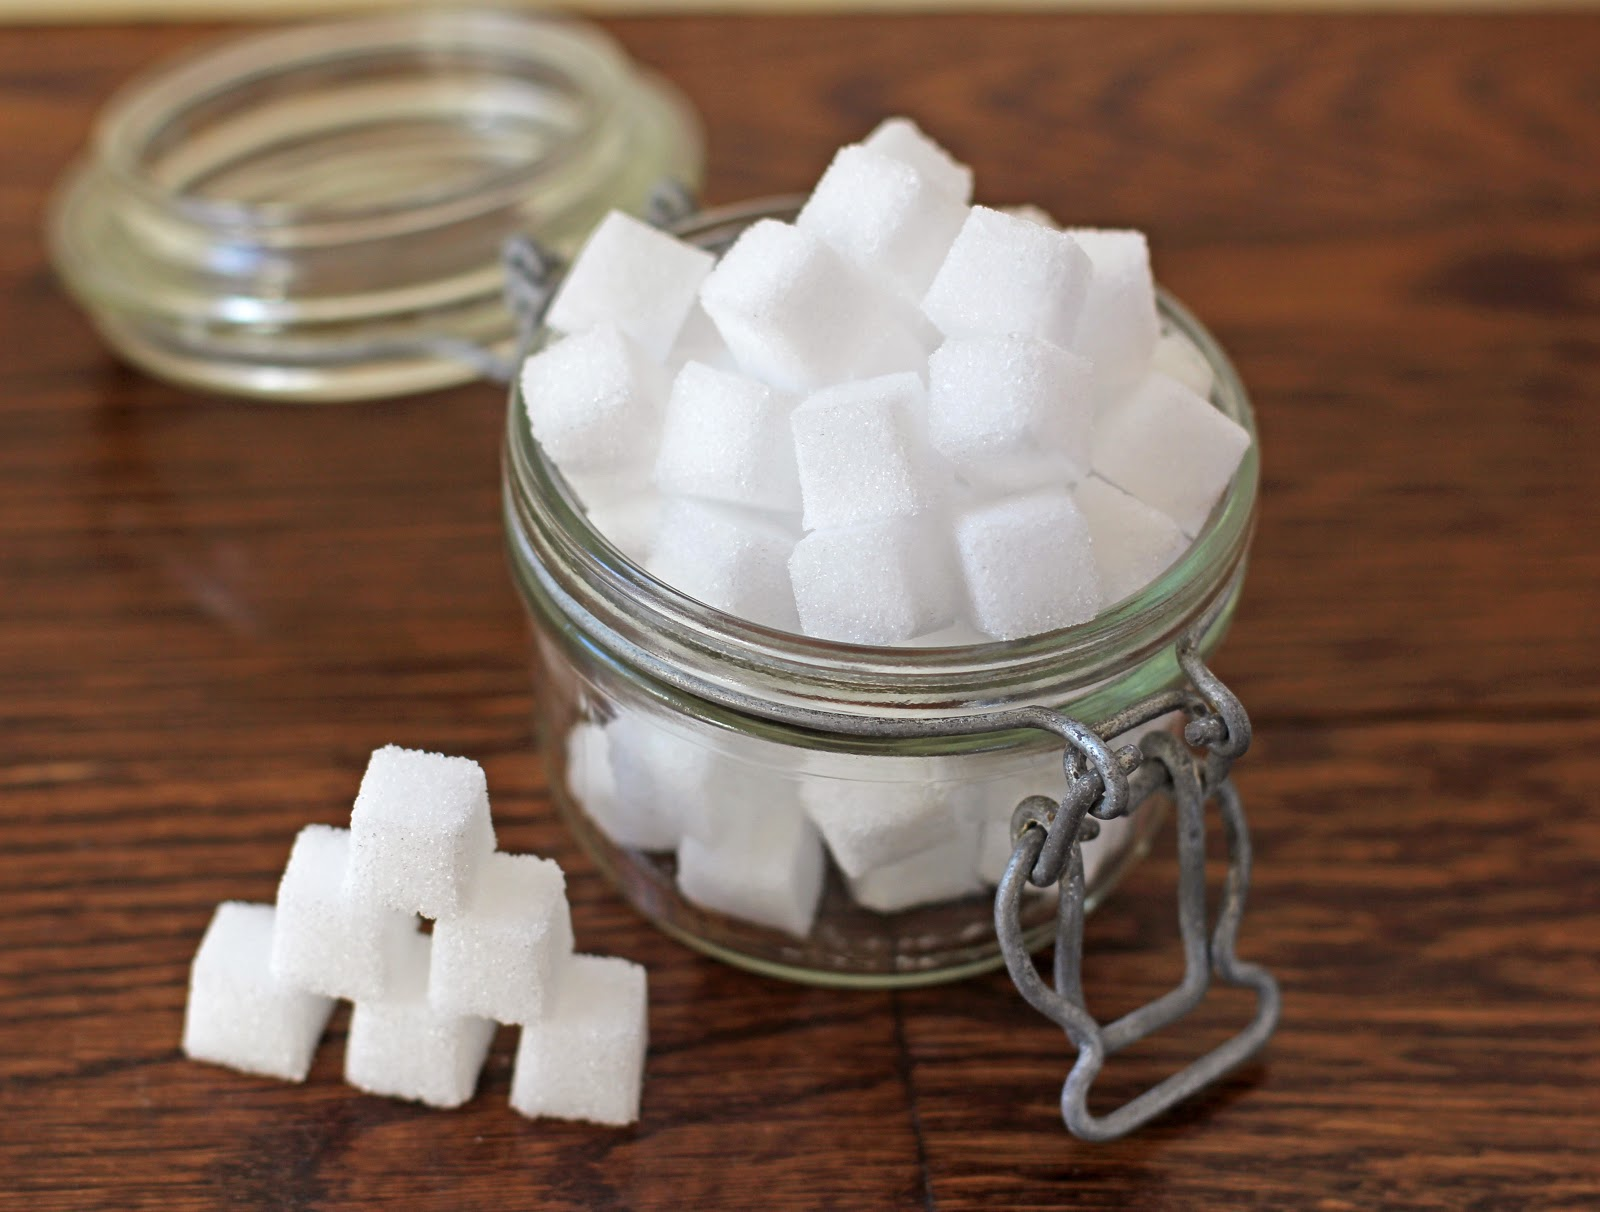 Healthy DIY Sugar Cubes - Desserts with Benefits